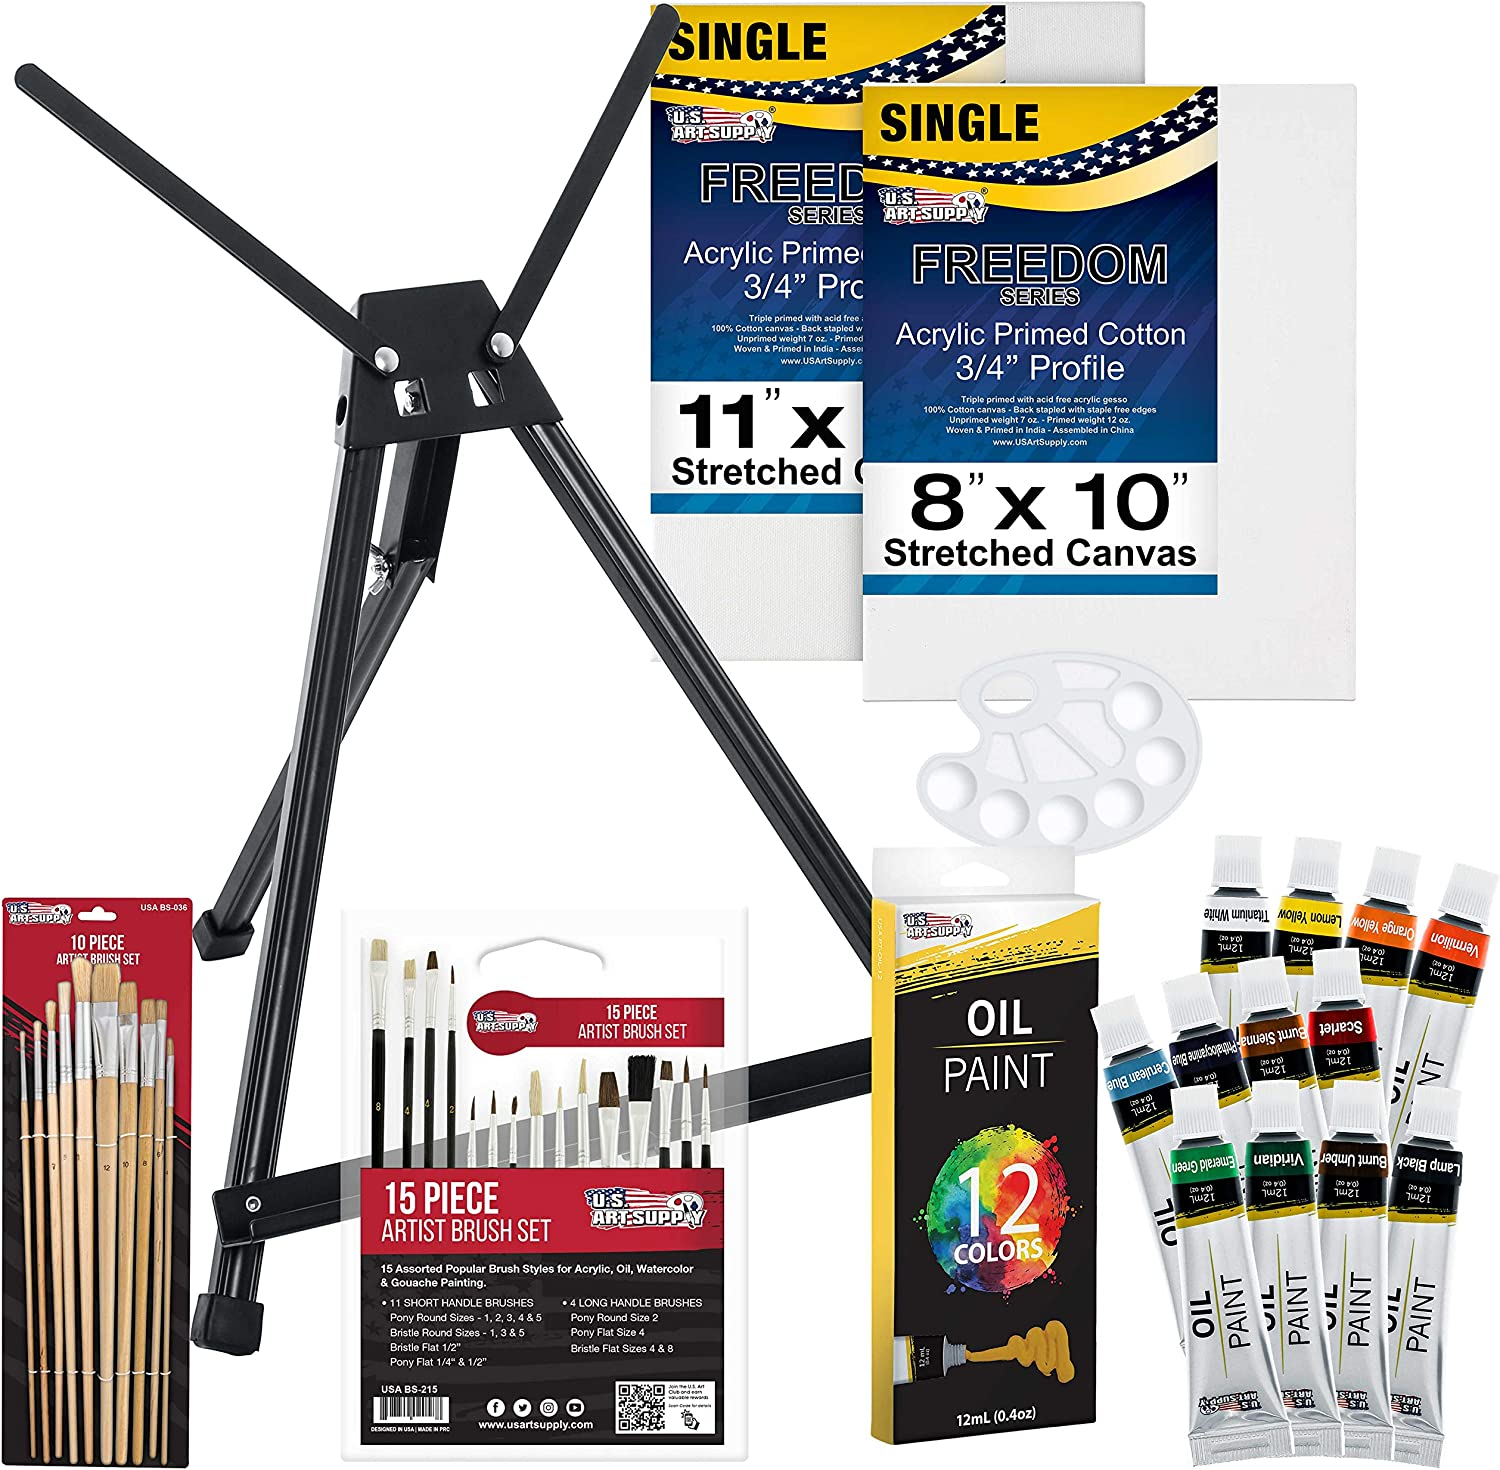 U.S Art Supply 42-Piece Oil Painting Set with Aluminum Tabletop Easel, 12 Oil Paint Colors, Stretched Canvas, Brushes, Plastic Palette & Color Mixing Wheel